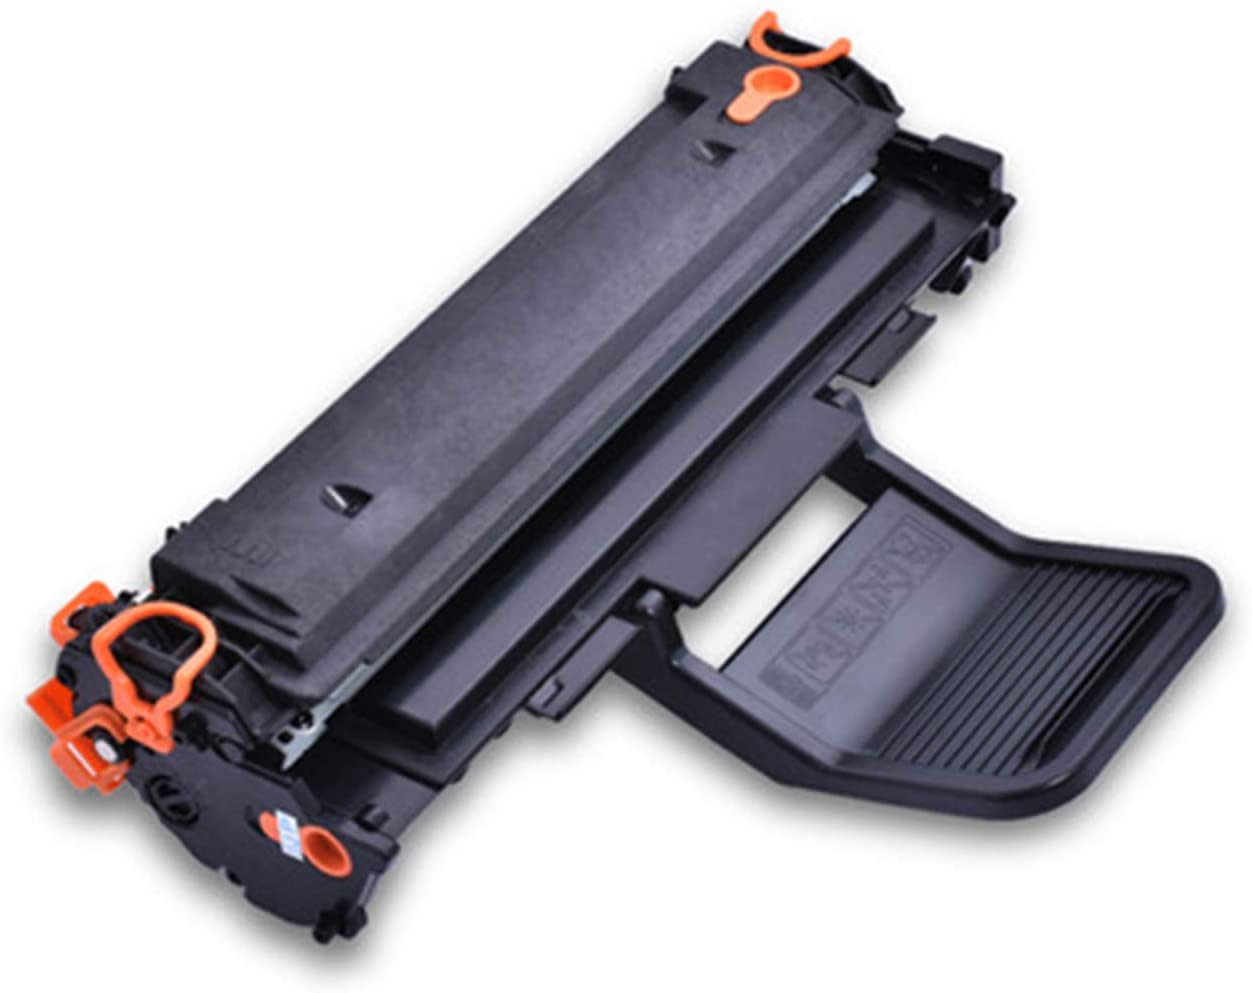 MHUI Compatible Toner Cartridge Replacement for Samsung SCX-4621NS for Samsung SCX-4621NS Printer